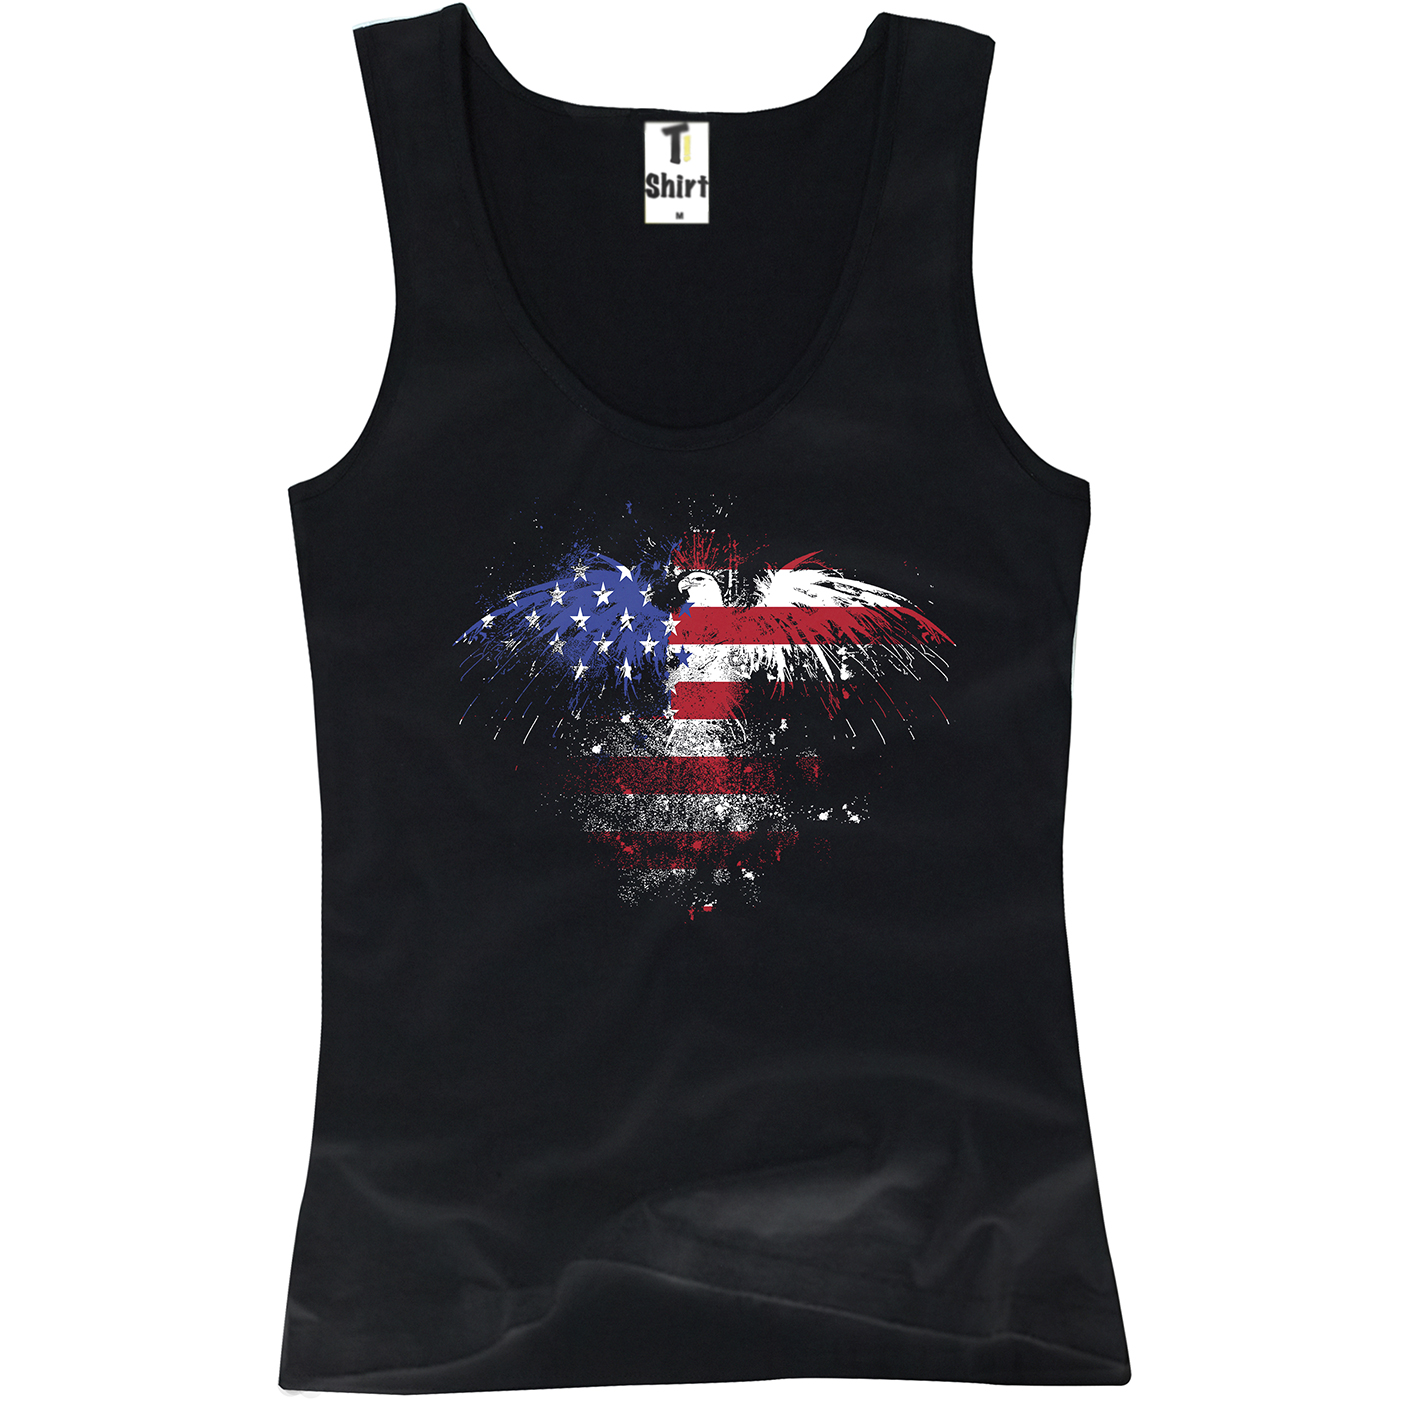 Tank Top für Damen USA Adler